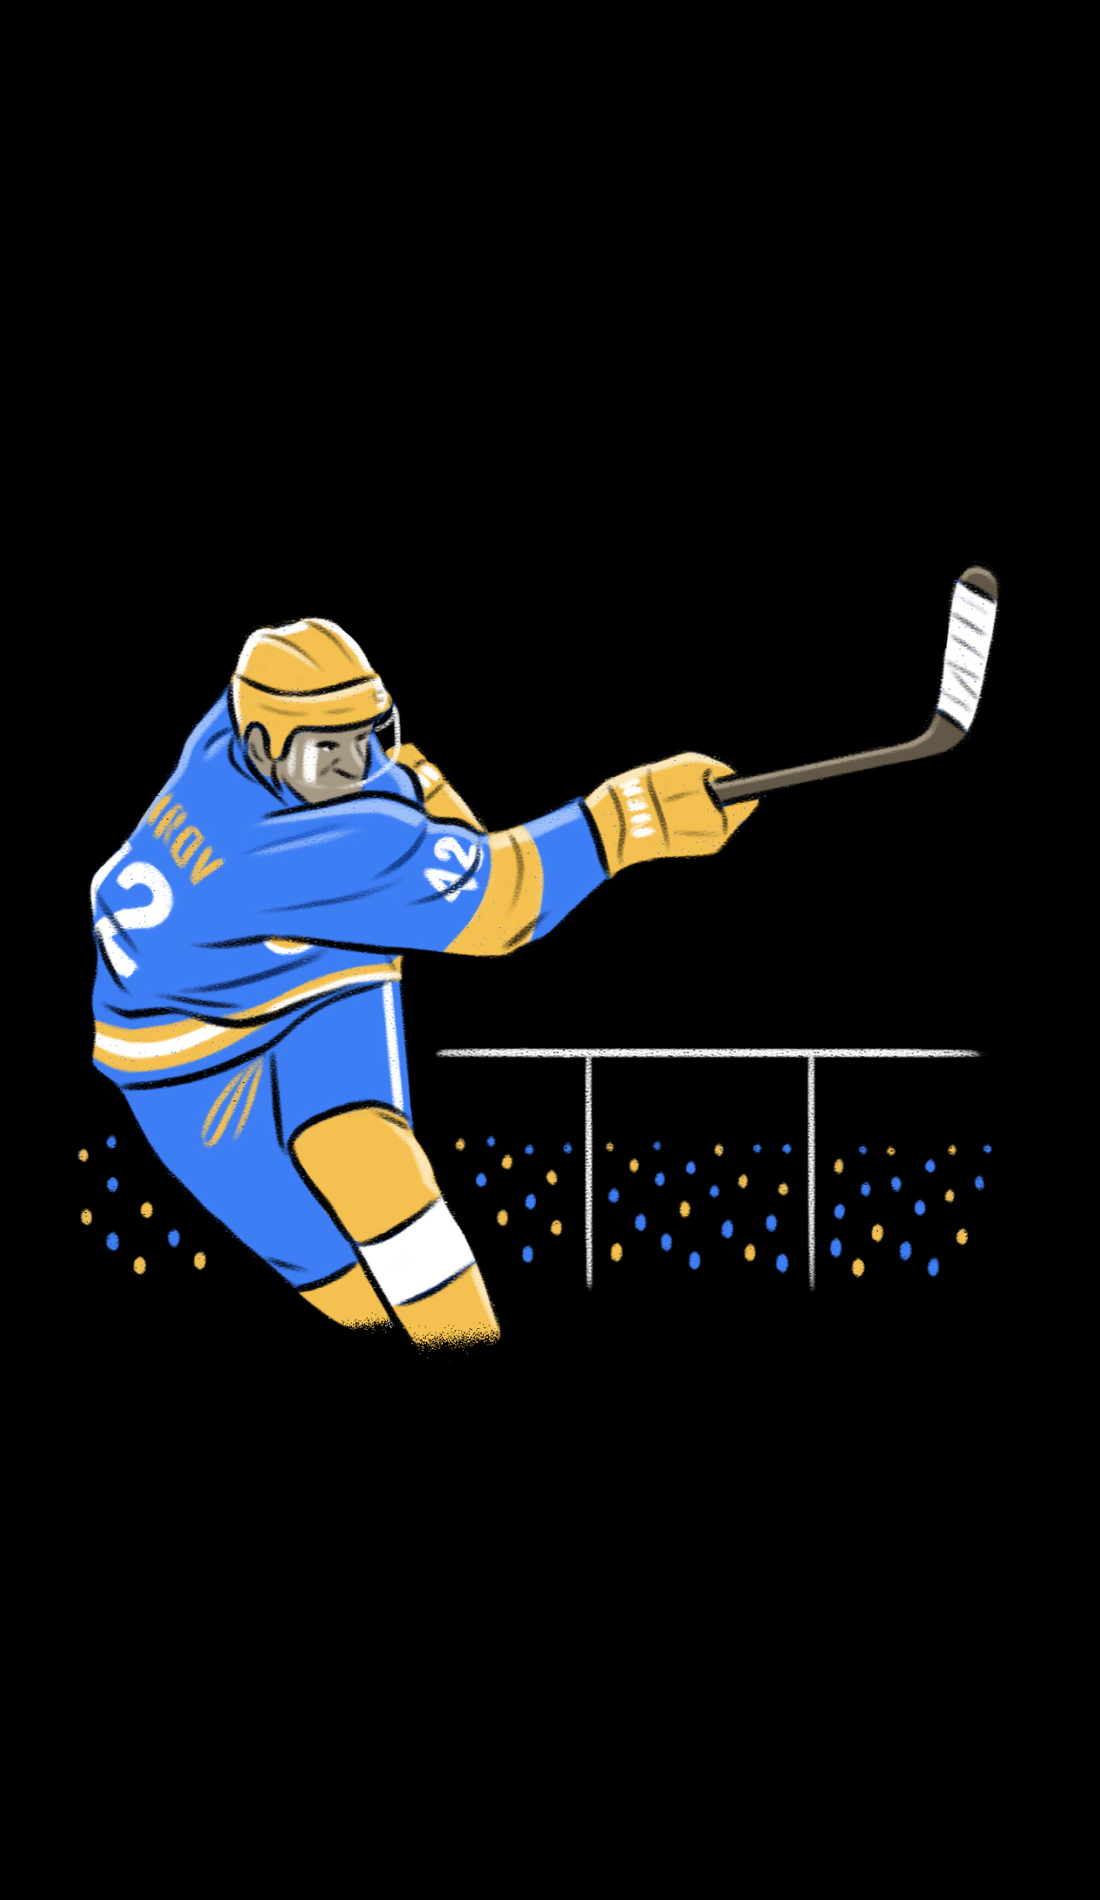 A Toledo Walleye live event